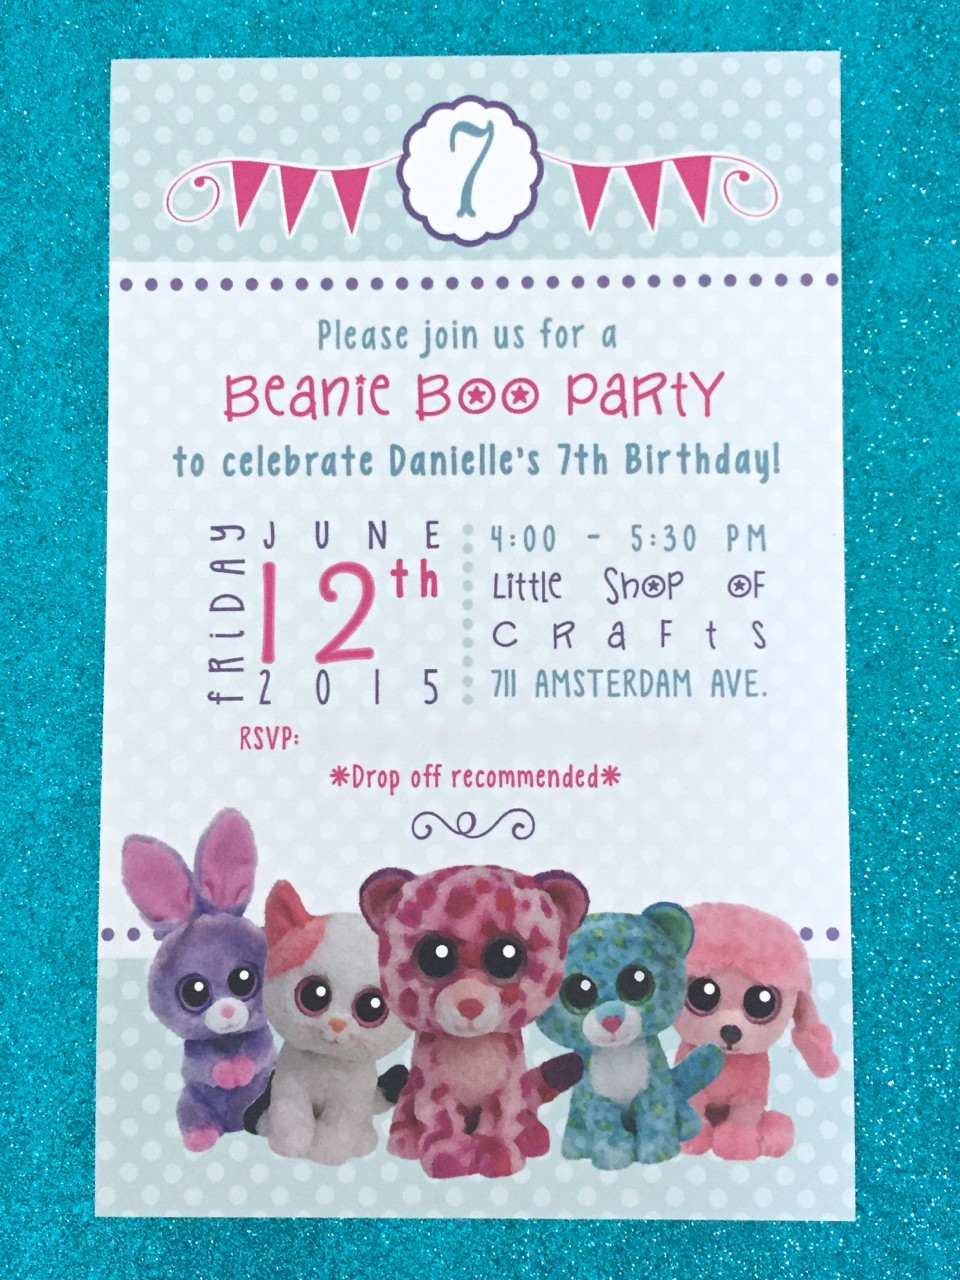 Beanie Boo Bonanza B Lee Events